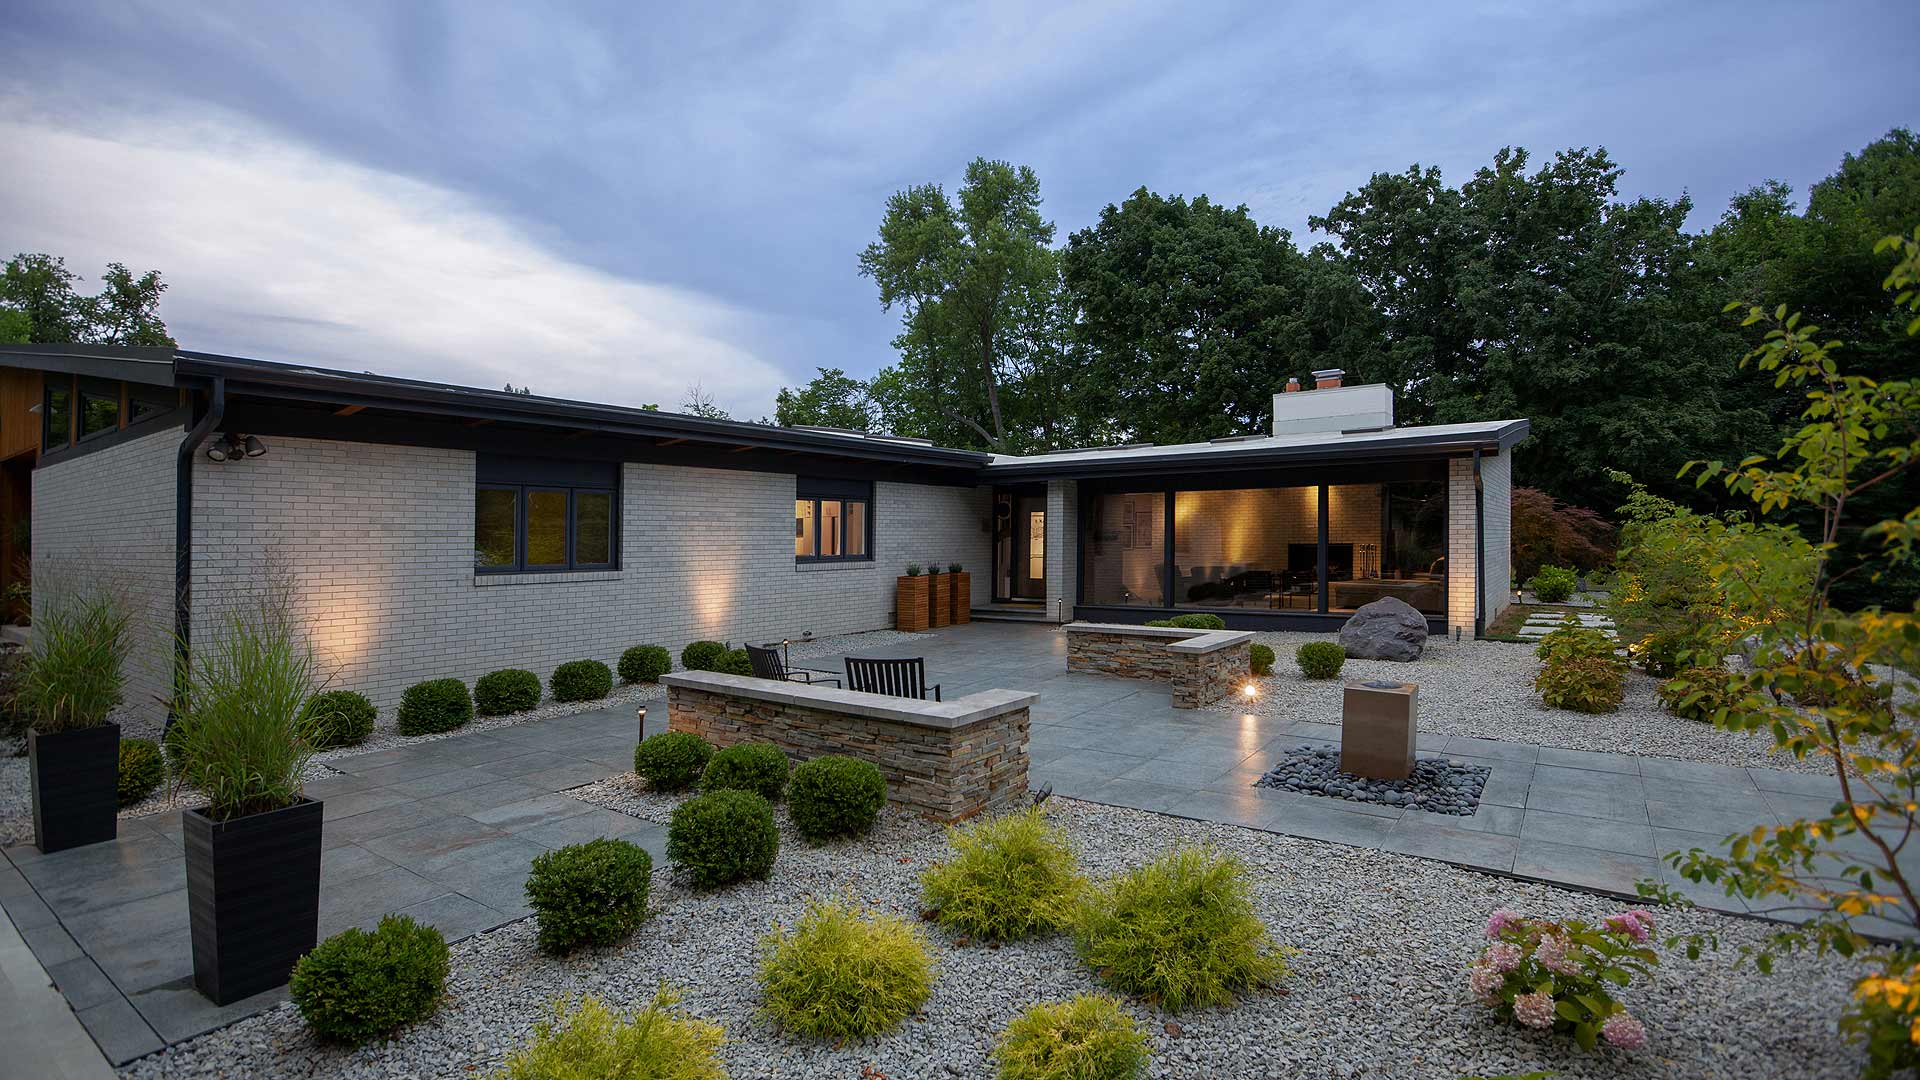 Front Entry Garden - Cigar Room - Midcentury Modern Addition - Brendonwood, Indianapolis - Christopher Short, Paul Reynolds, Architects, HAUS | Architecture For Modern Lifestyles - WERK | Building Modern - Paul Reynolds, Project Manager